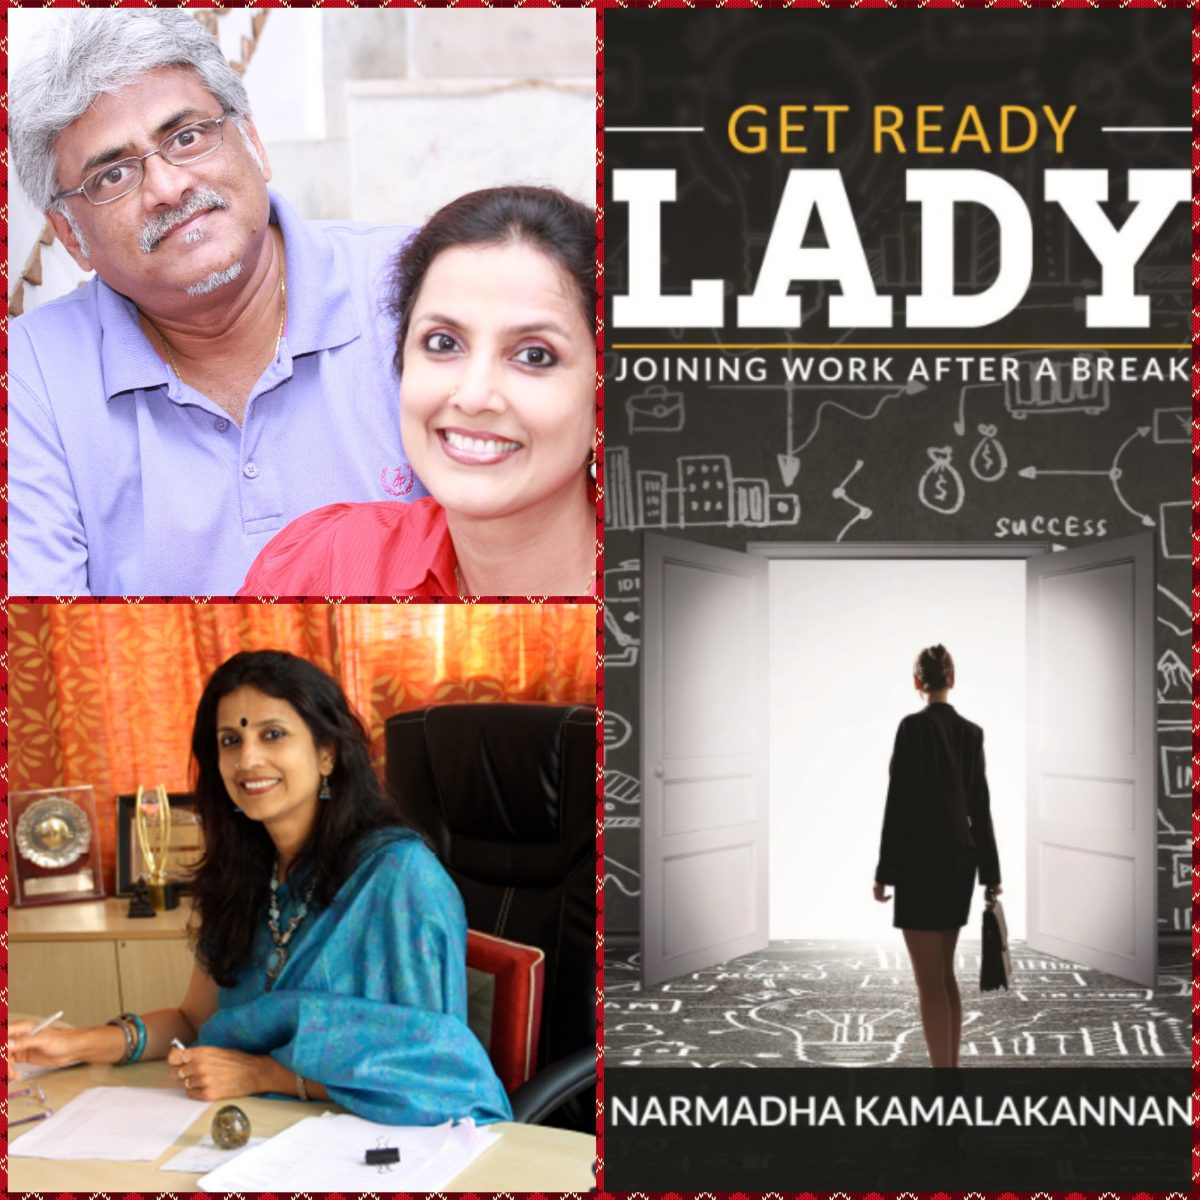 GET READY LADY Interview Series : Hari Menon talks about his Dashing & Super Efficient Wife Shanthi Menon, Founder Principal of Deens Academy